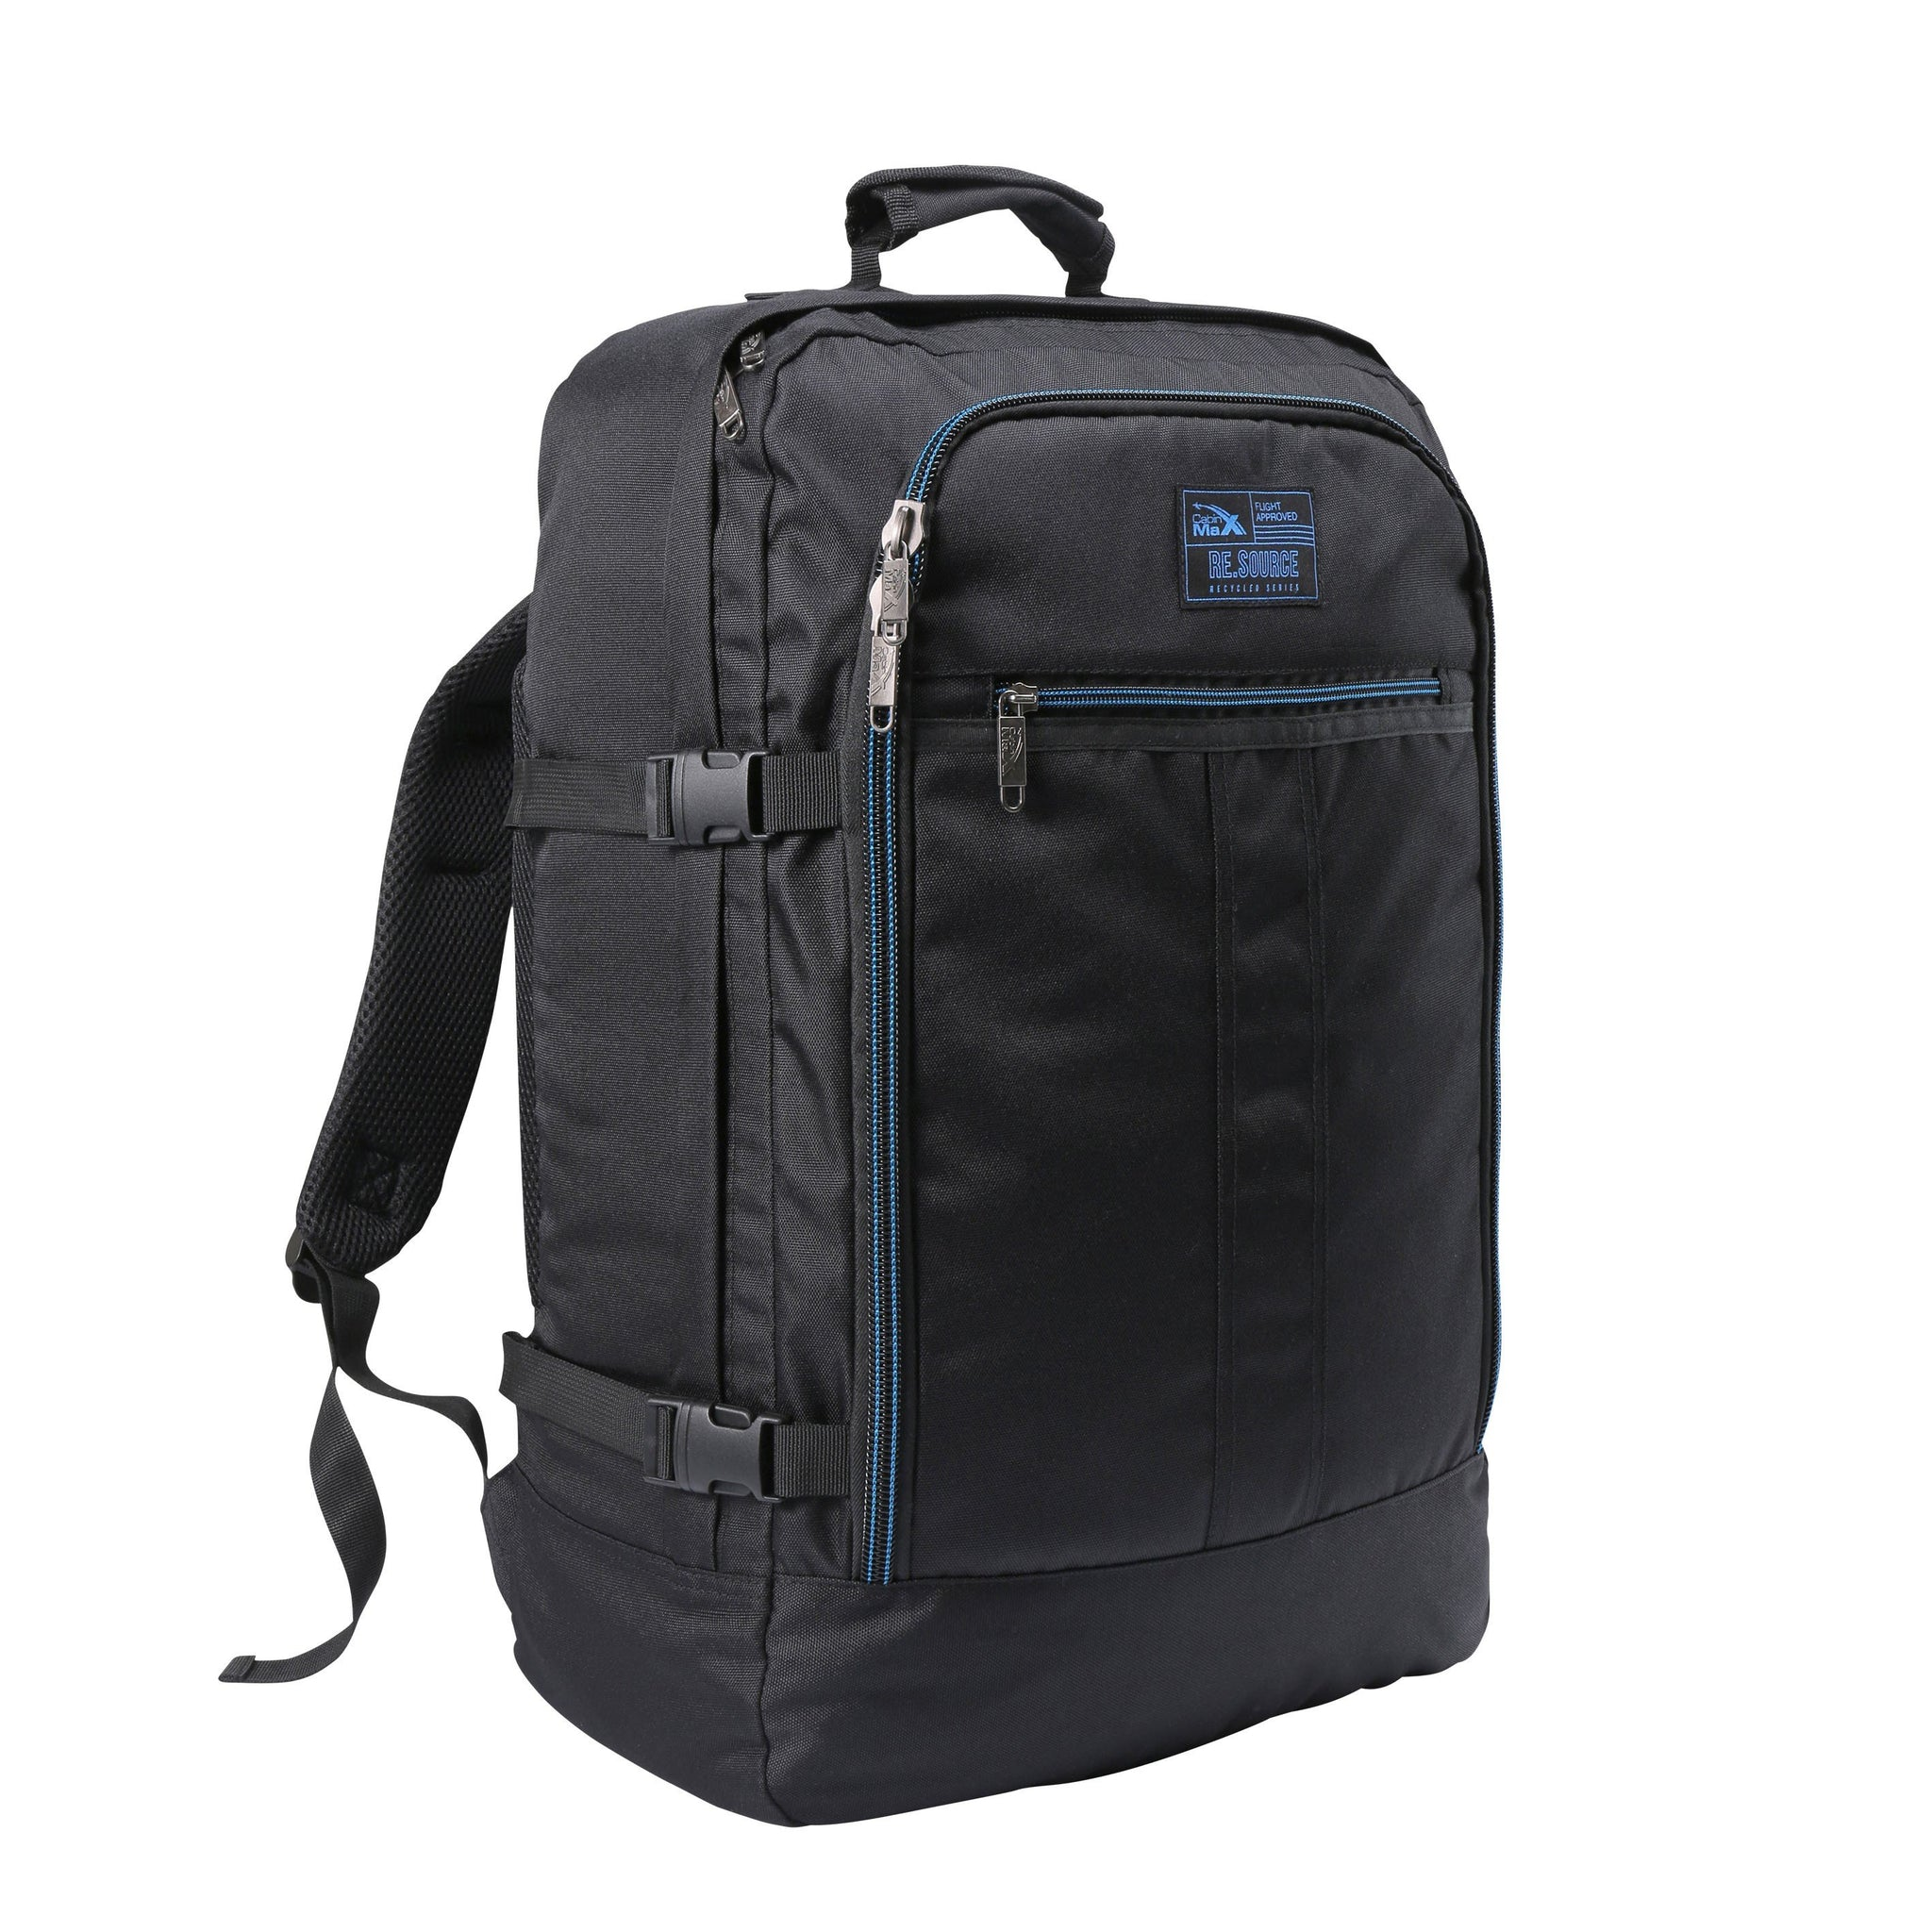 Metz Re.Source 44L Recycled Cabin Backpack - Cabin Max